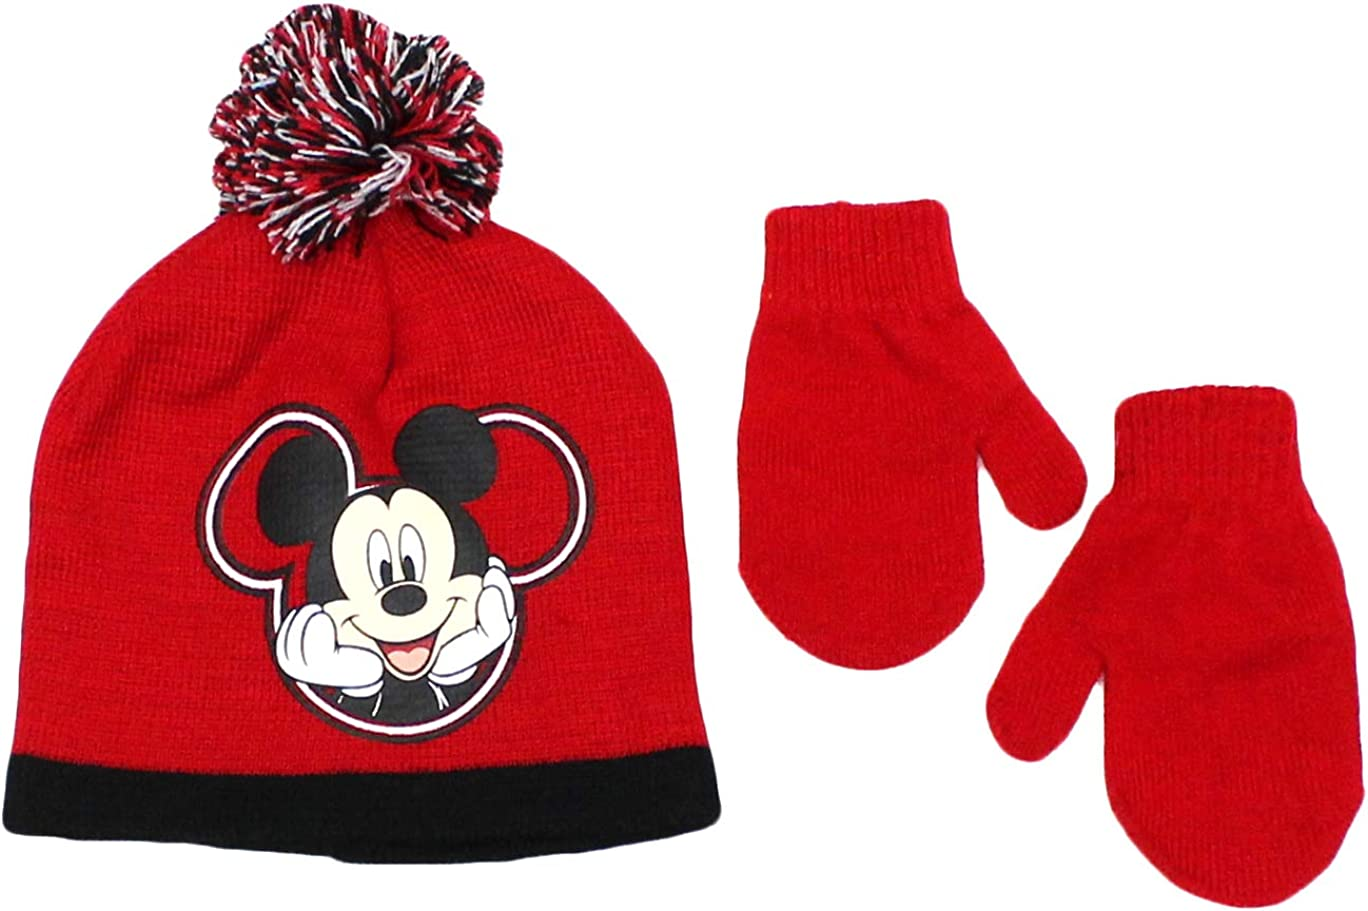 Elegant Headwear Toddler Boy Beanie Hat With Mittens Winter Accessory Set, Mickey Mouse Red, 8